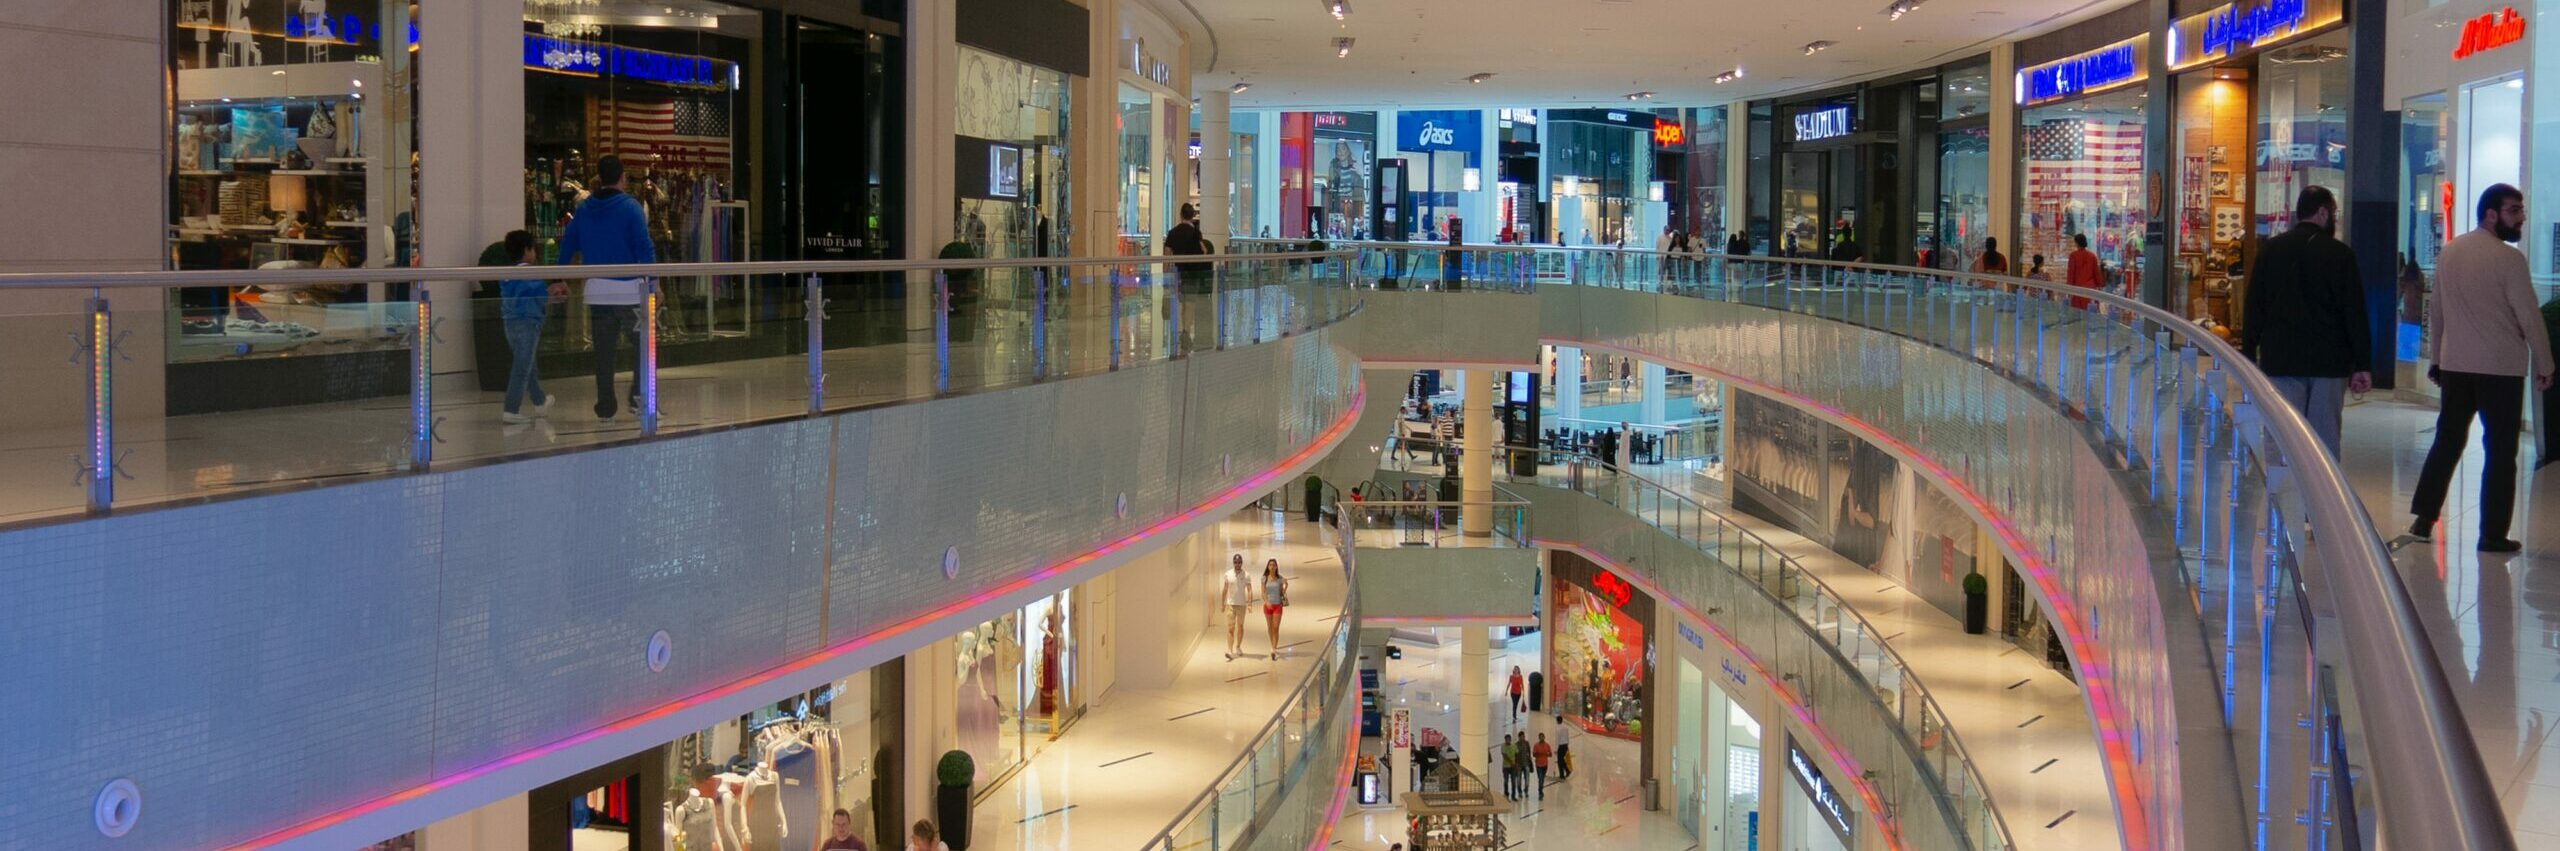 top view mall interior photo